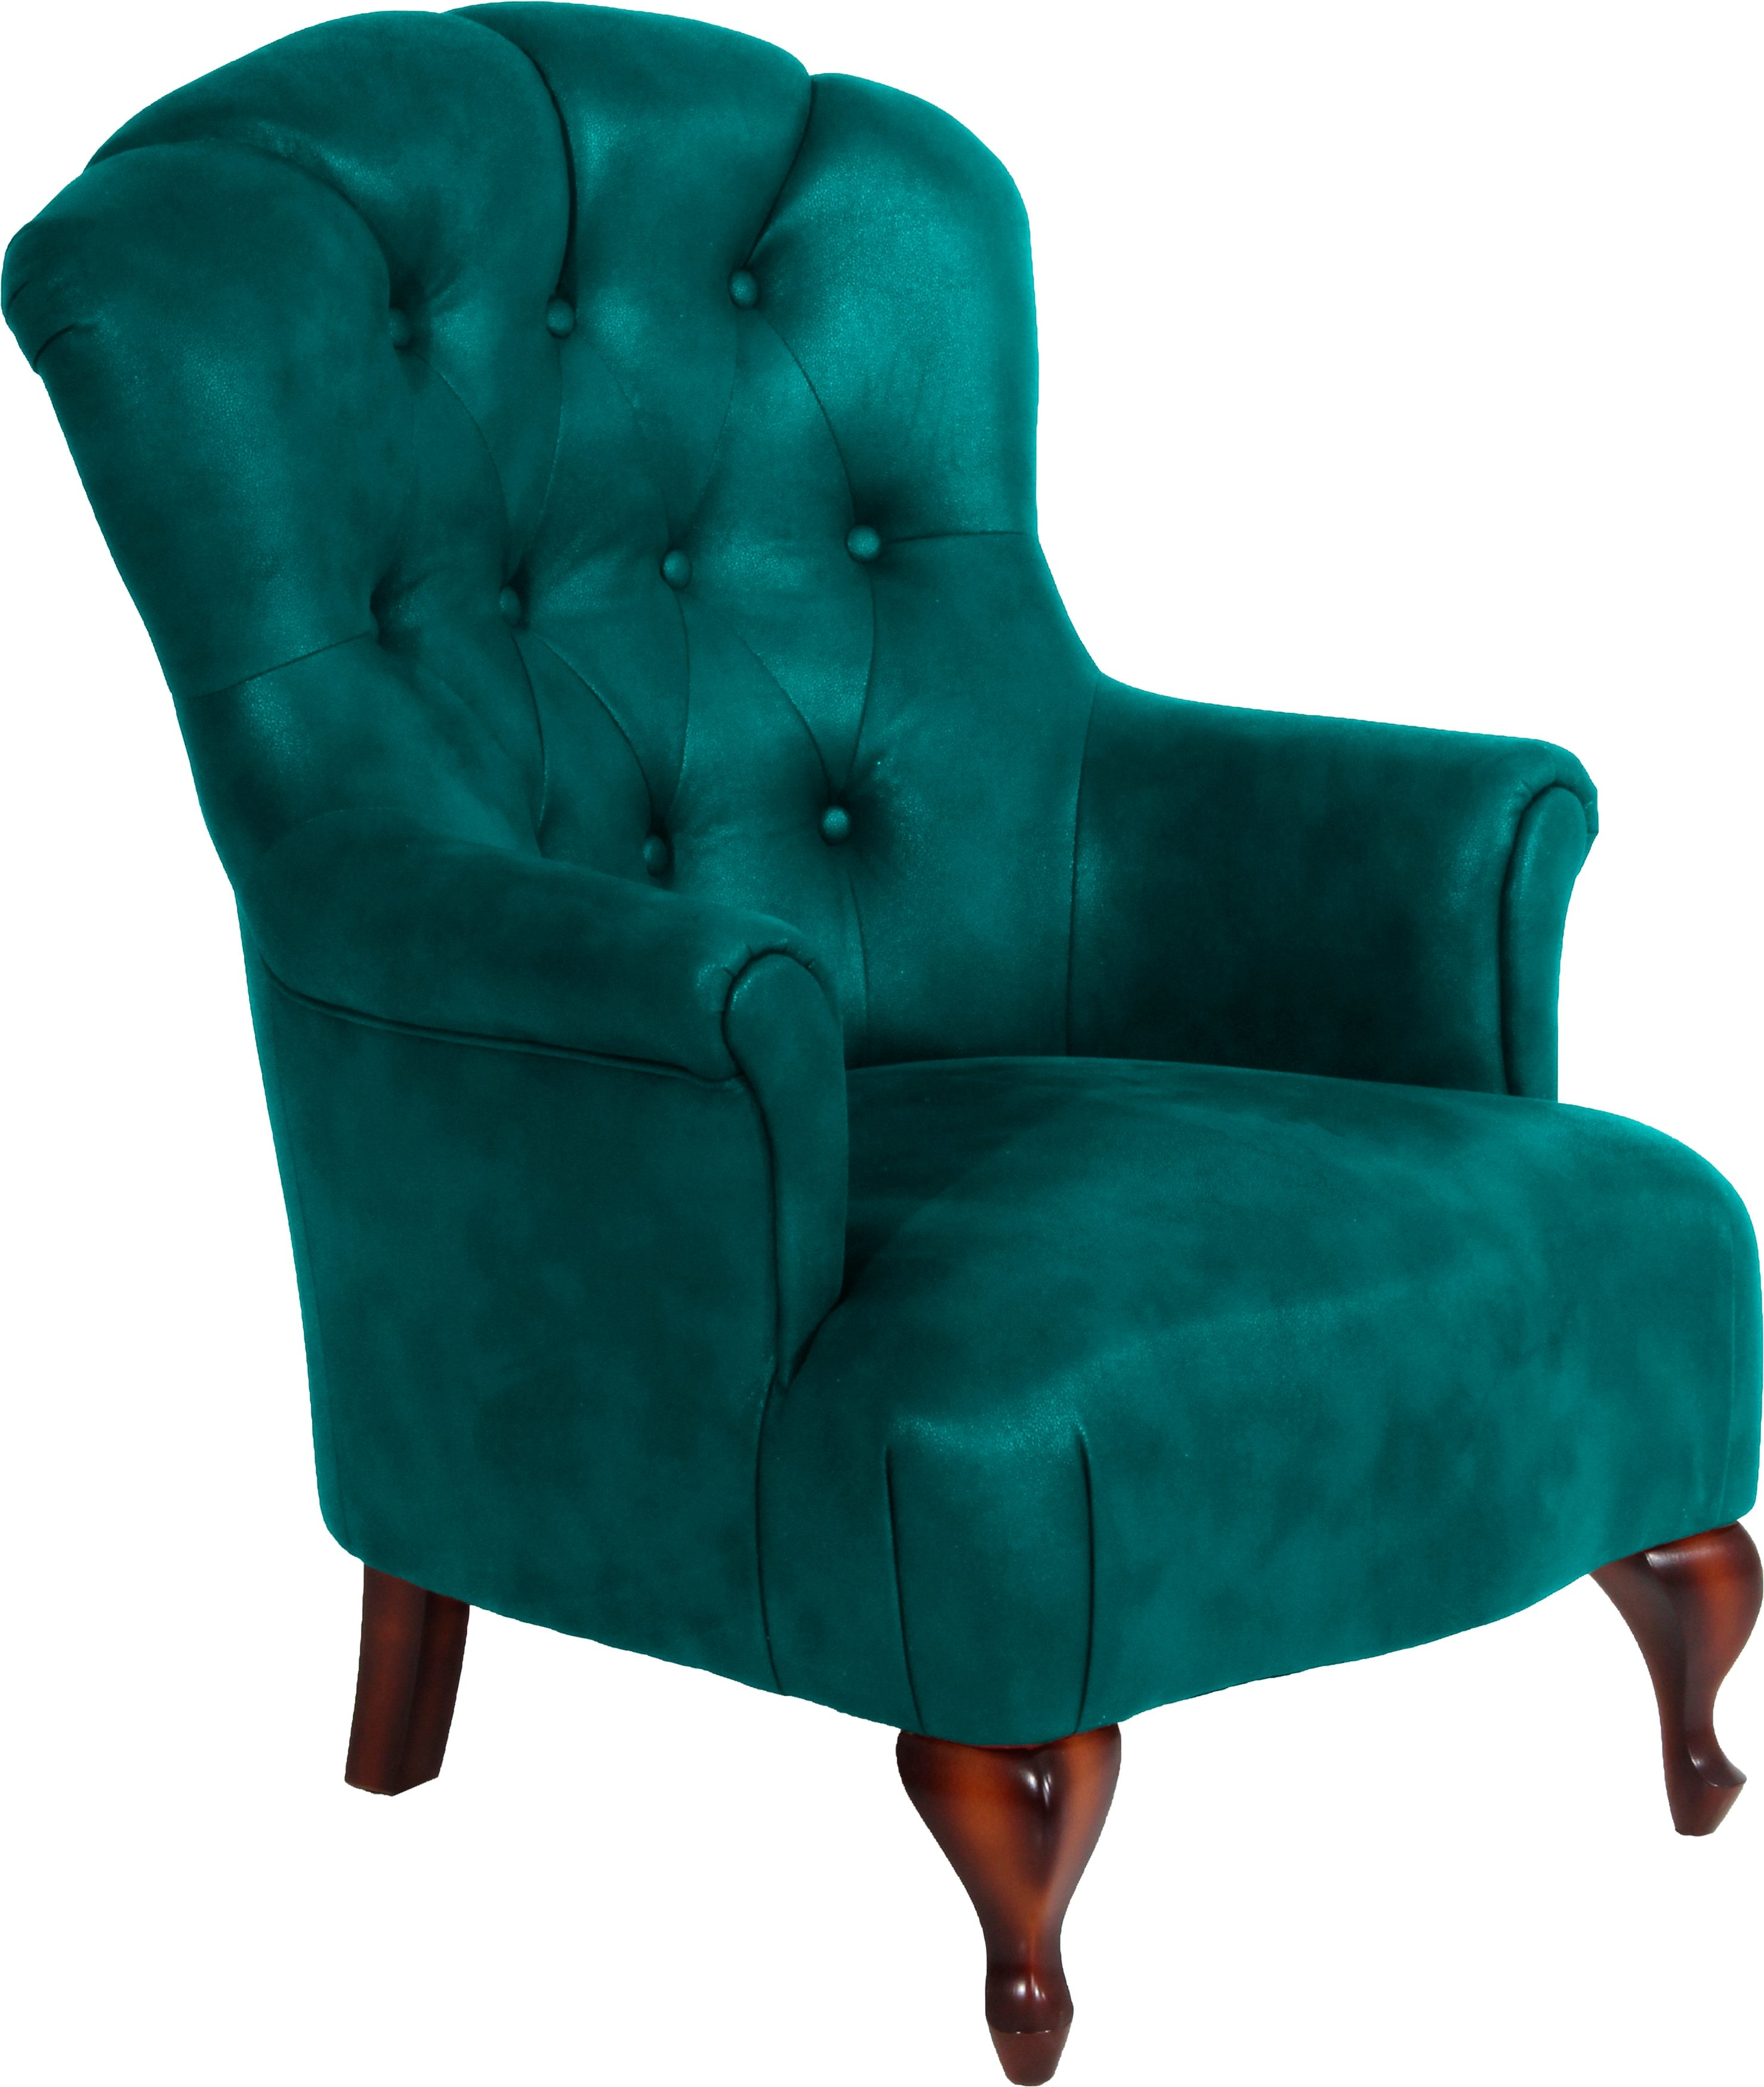 Sessel Retro Design Max Winzer® Chesterfield Sessel »clara«, Mit Edler